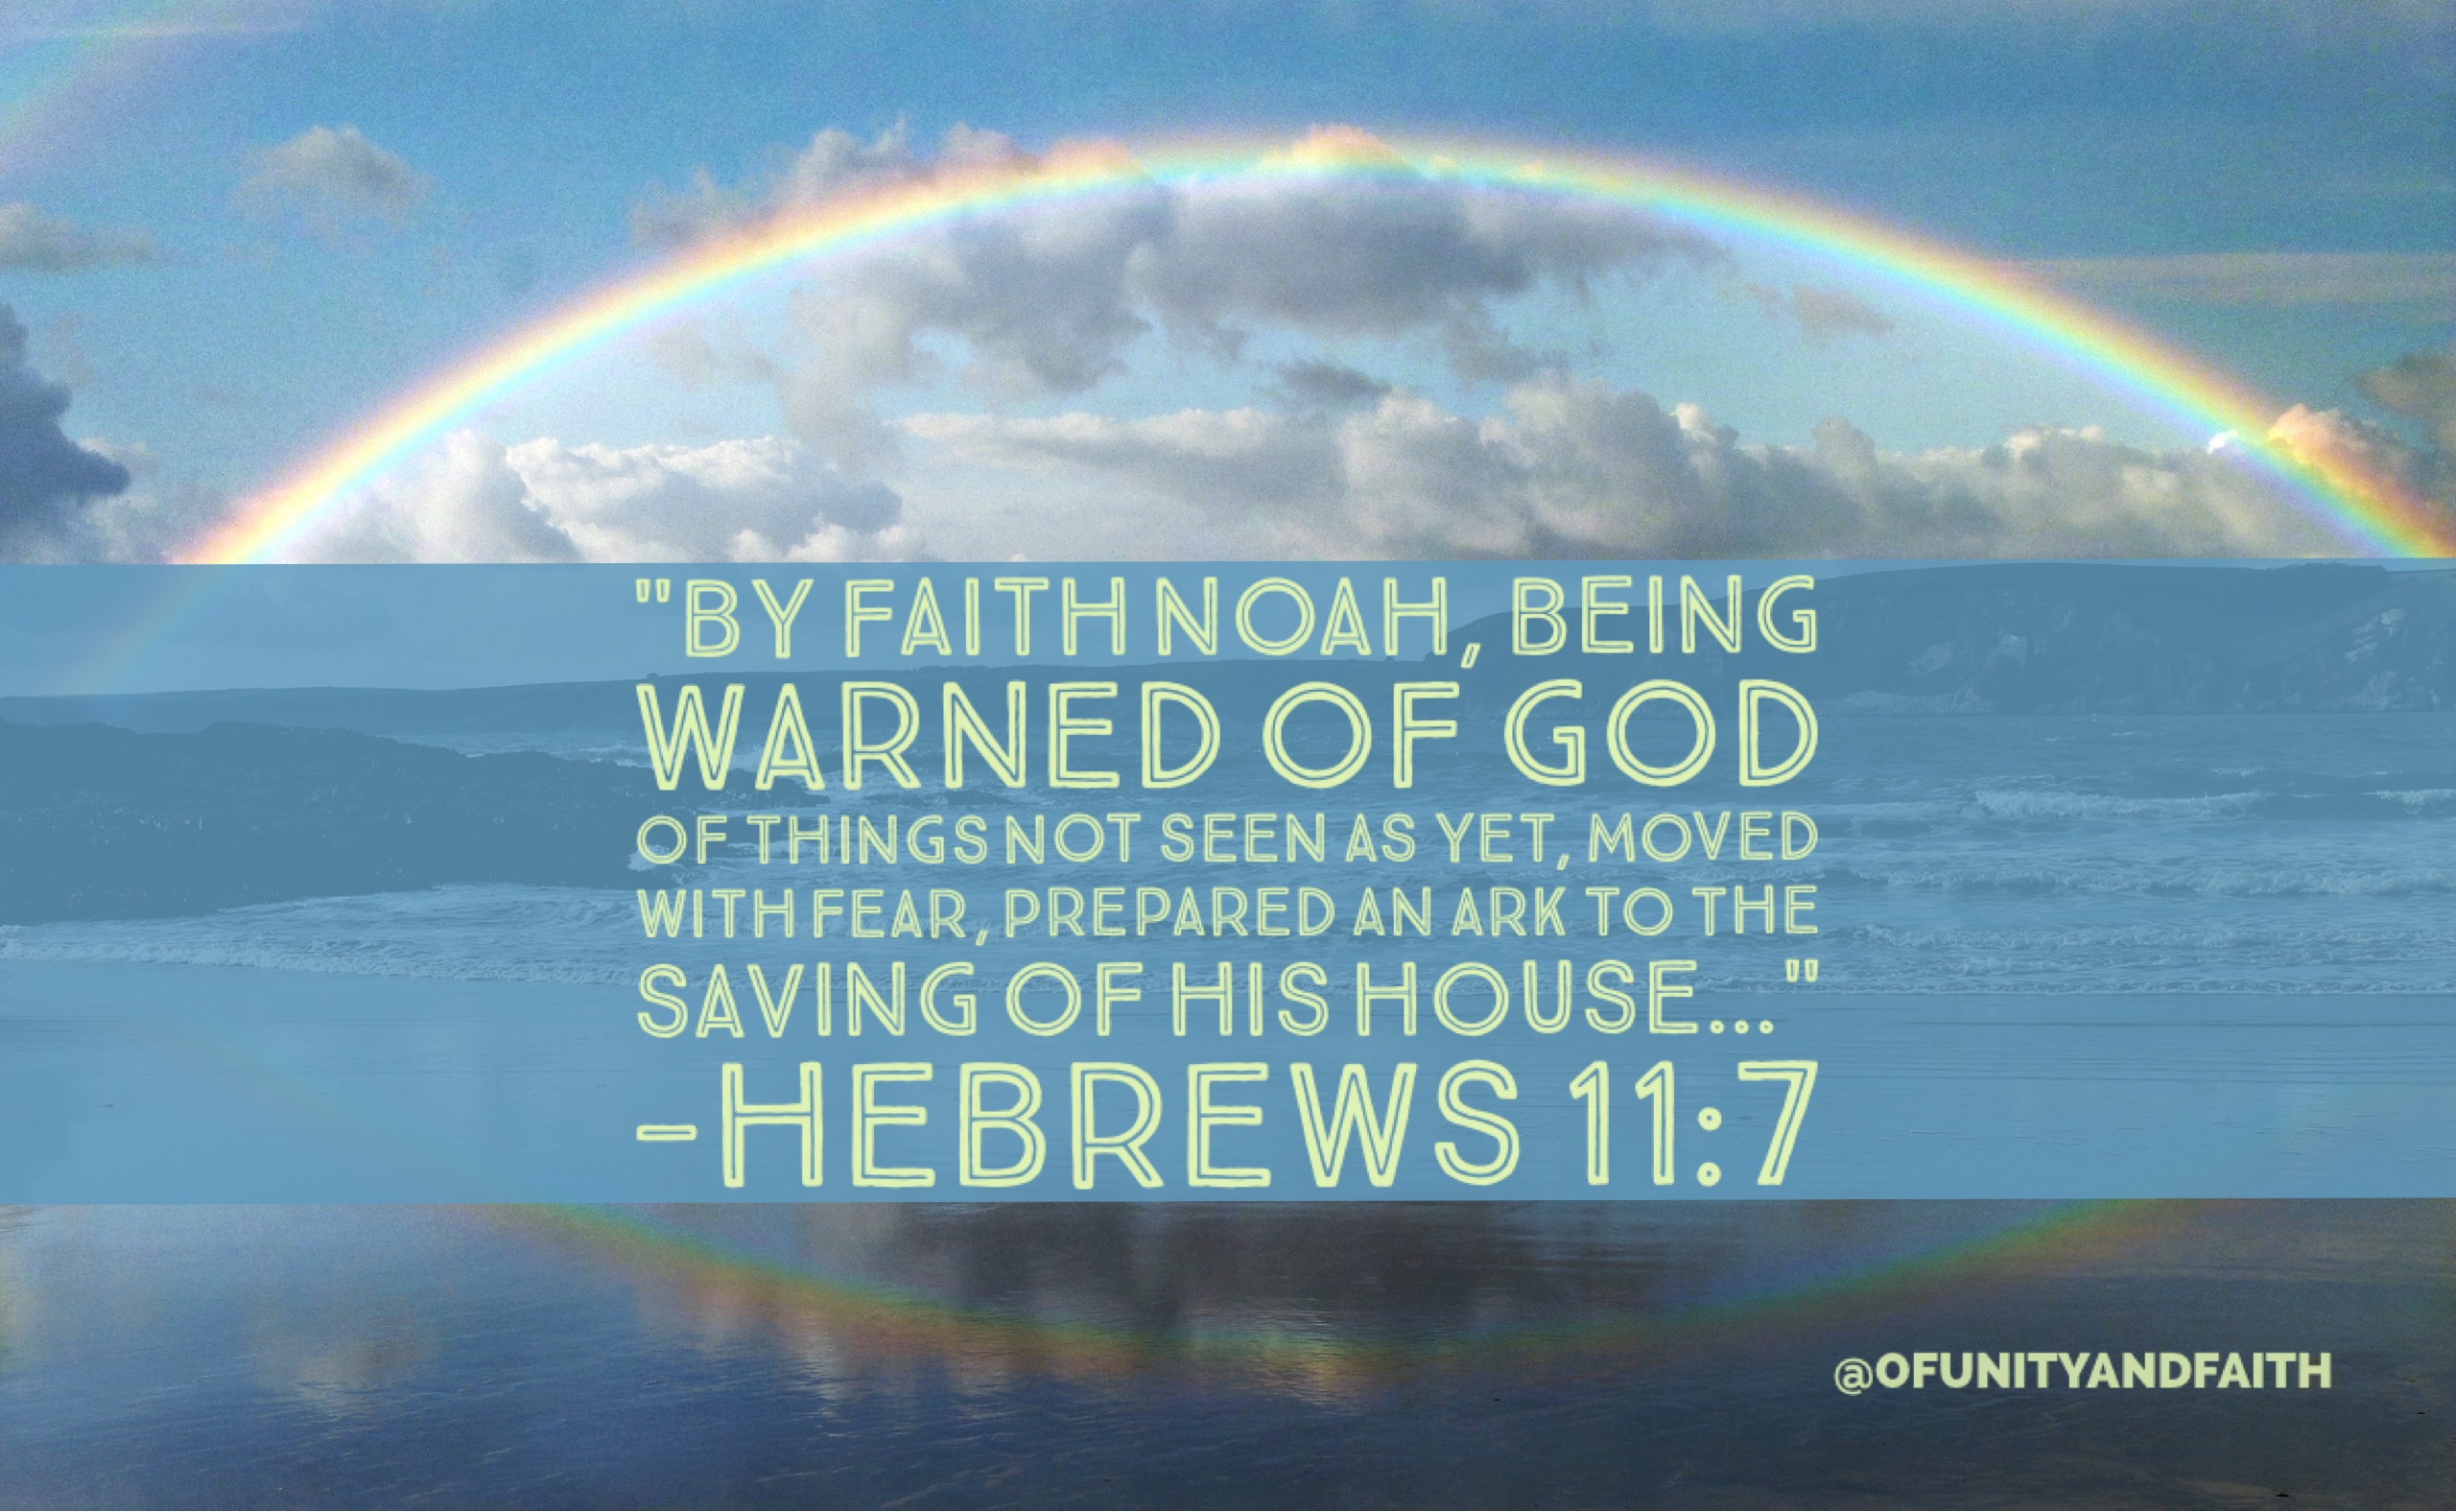 Noah's Example of Perseverance | of-unity-and-faith